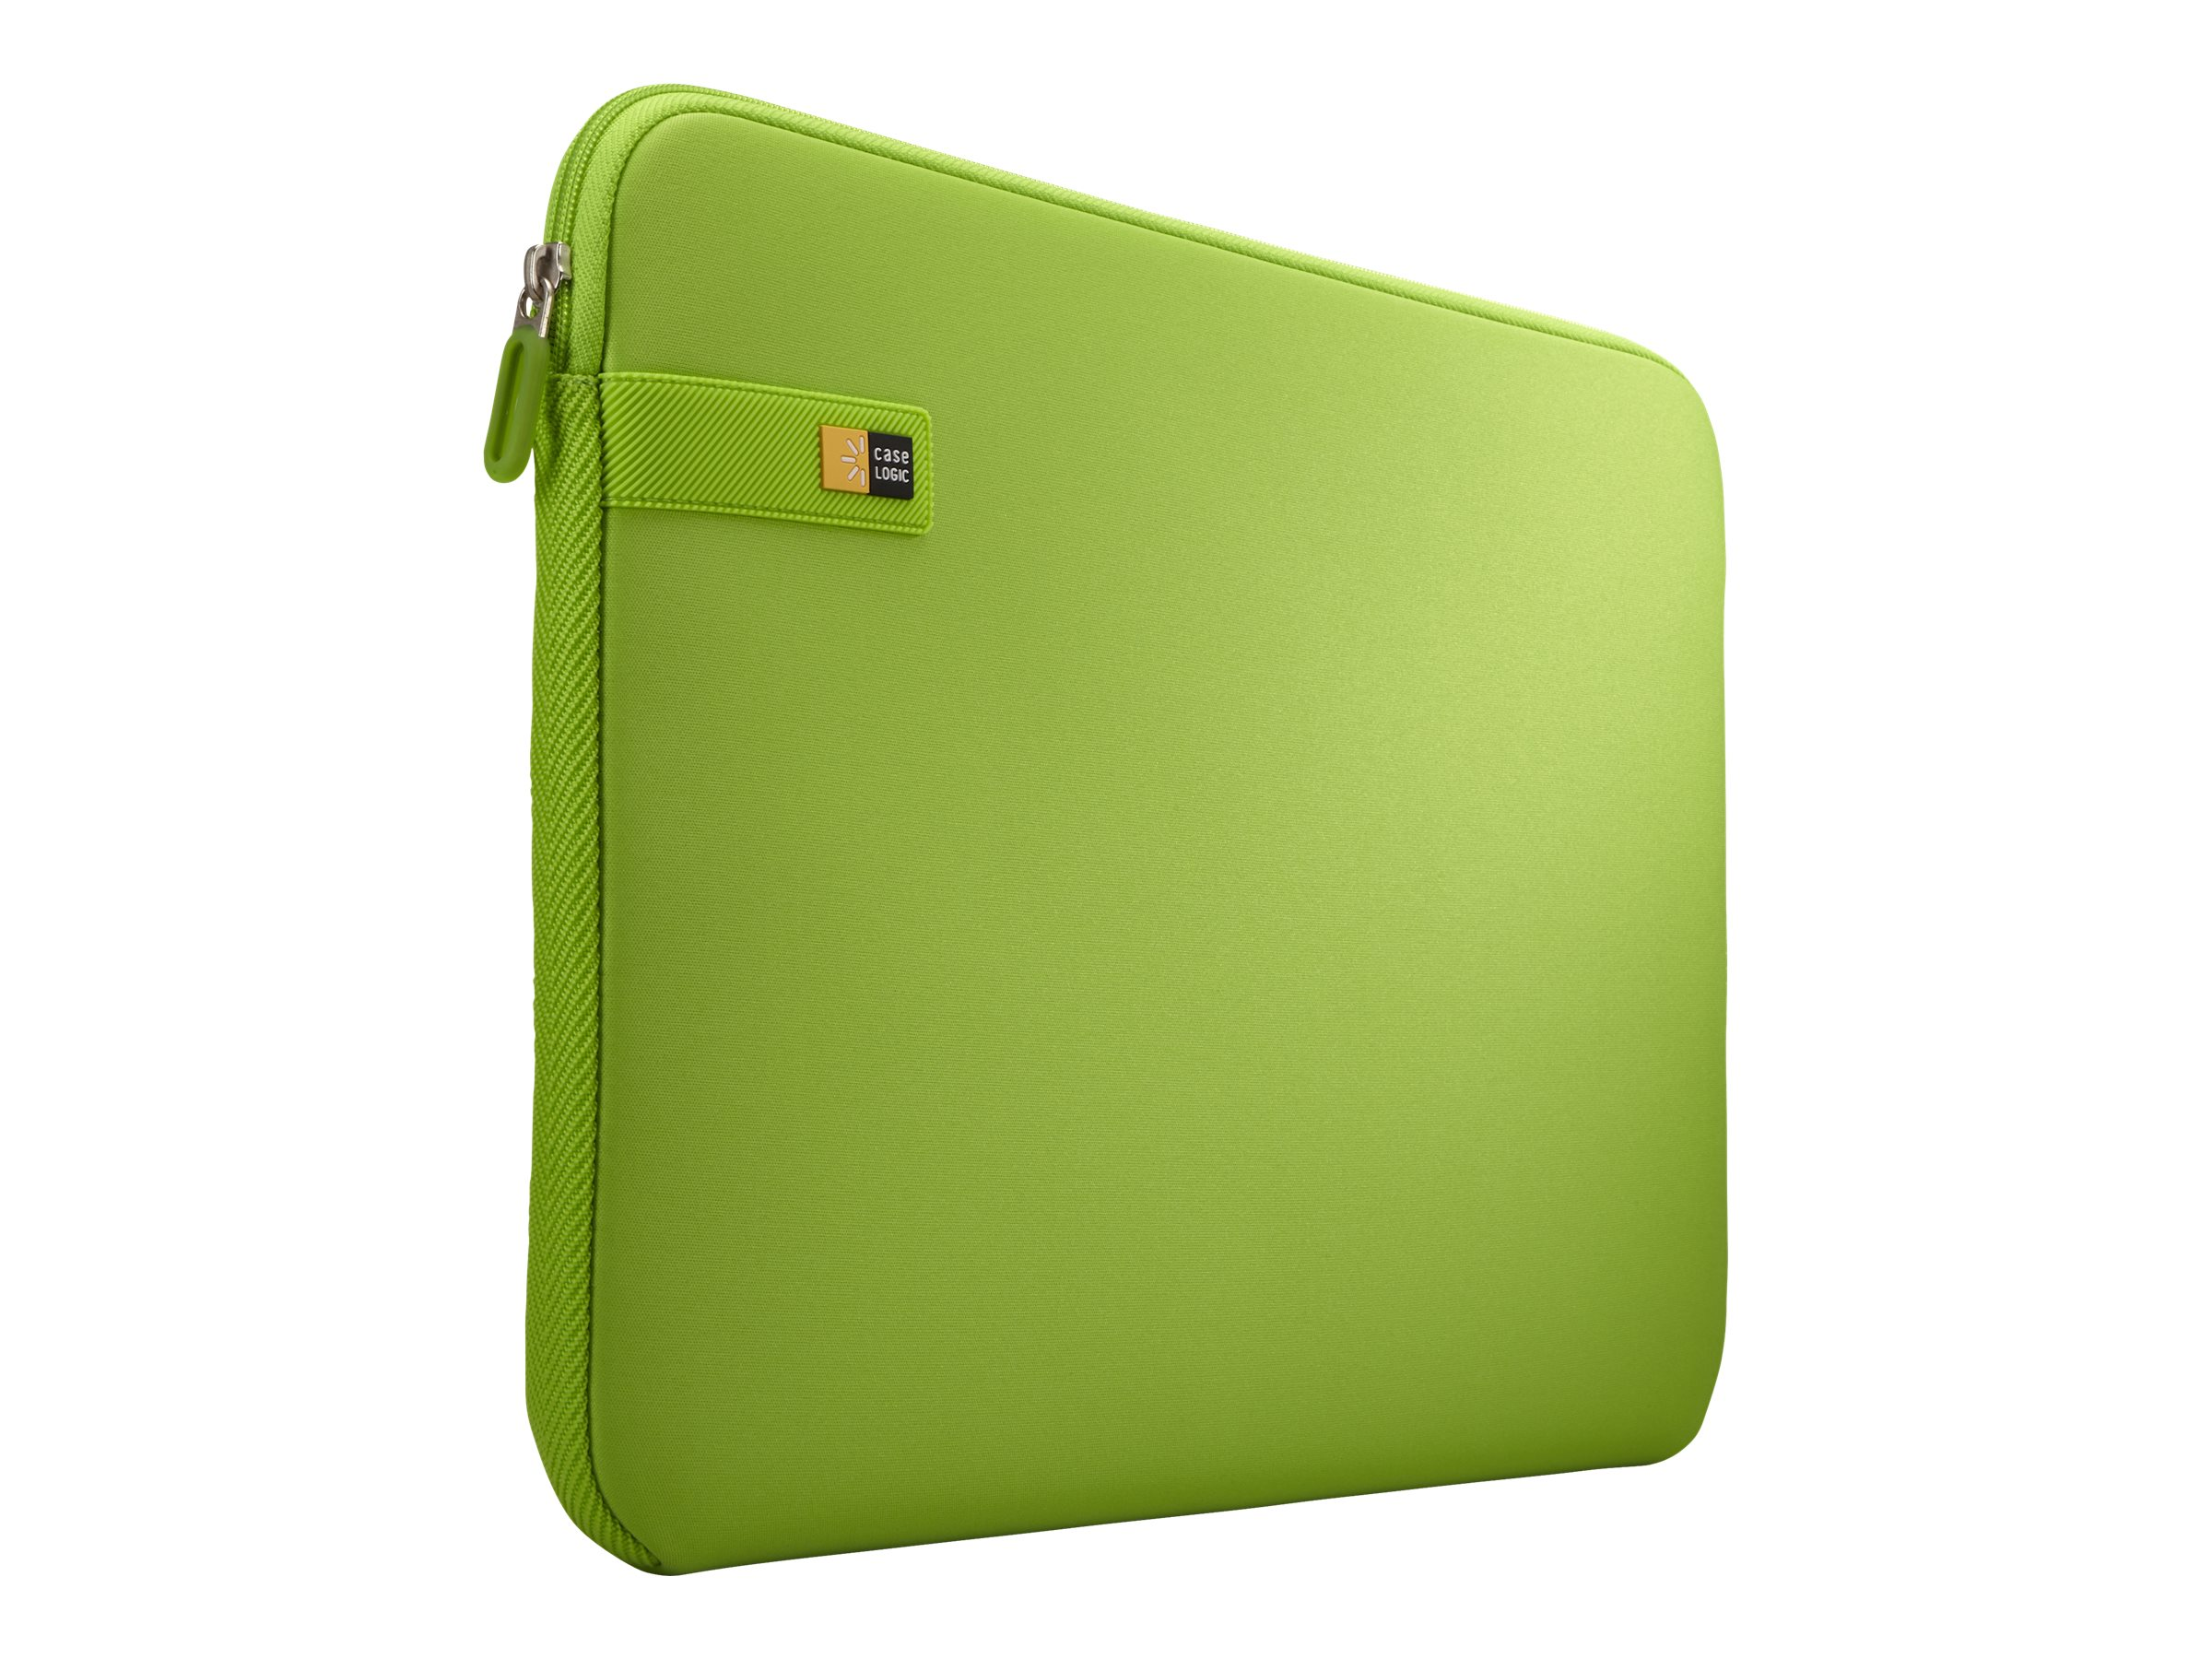 Case Logic Laptop Sleeve 15.6, Lime, LAPS116LIME, 29660985, Carrying Cases - Notebook